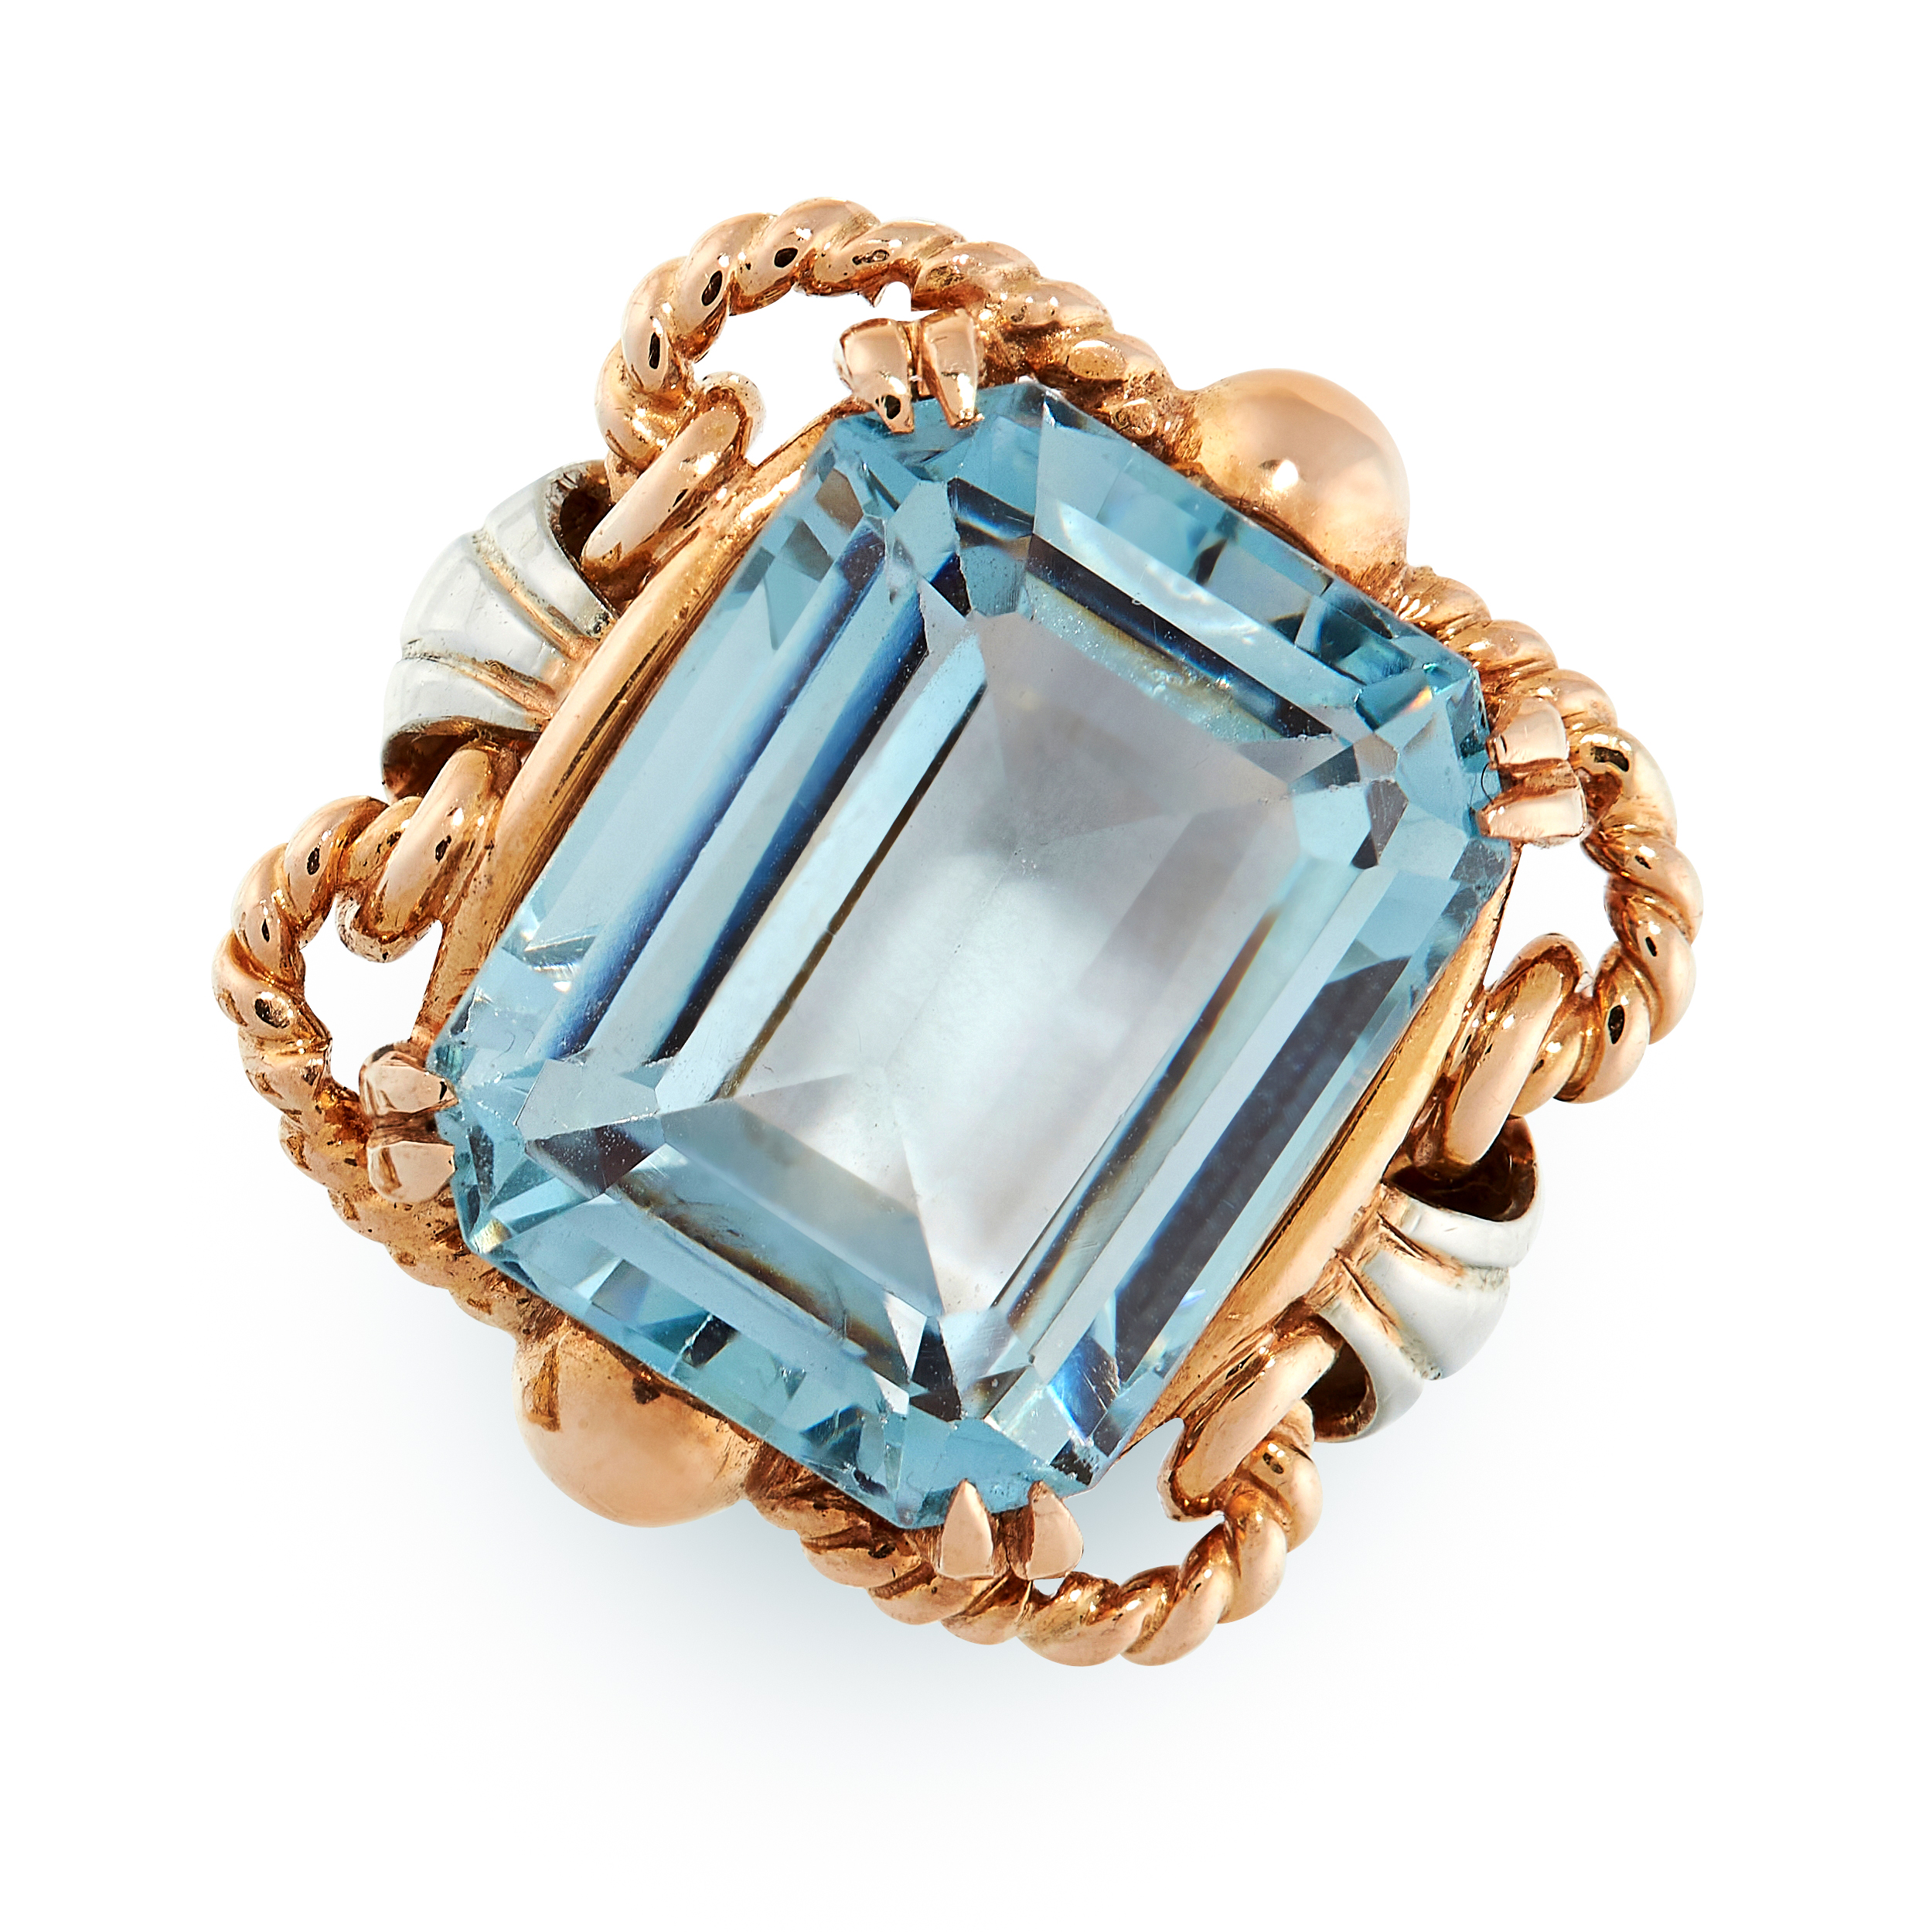 RETRO BLUE GEMSTONE RING comprising of an emerald cut blue gemstones of 13.62 carats in two-tone